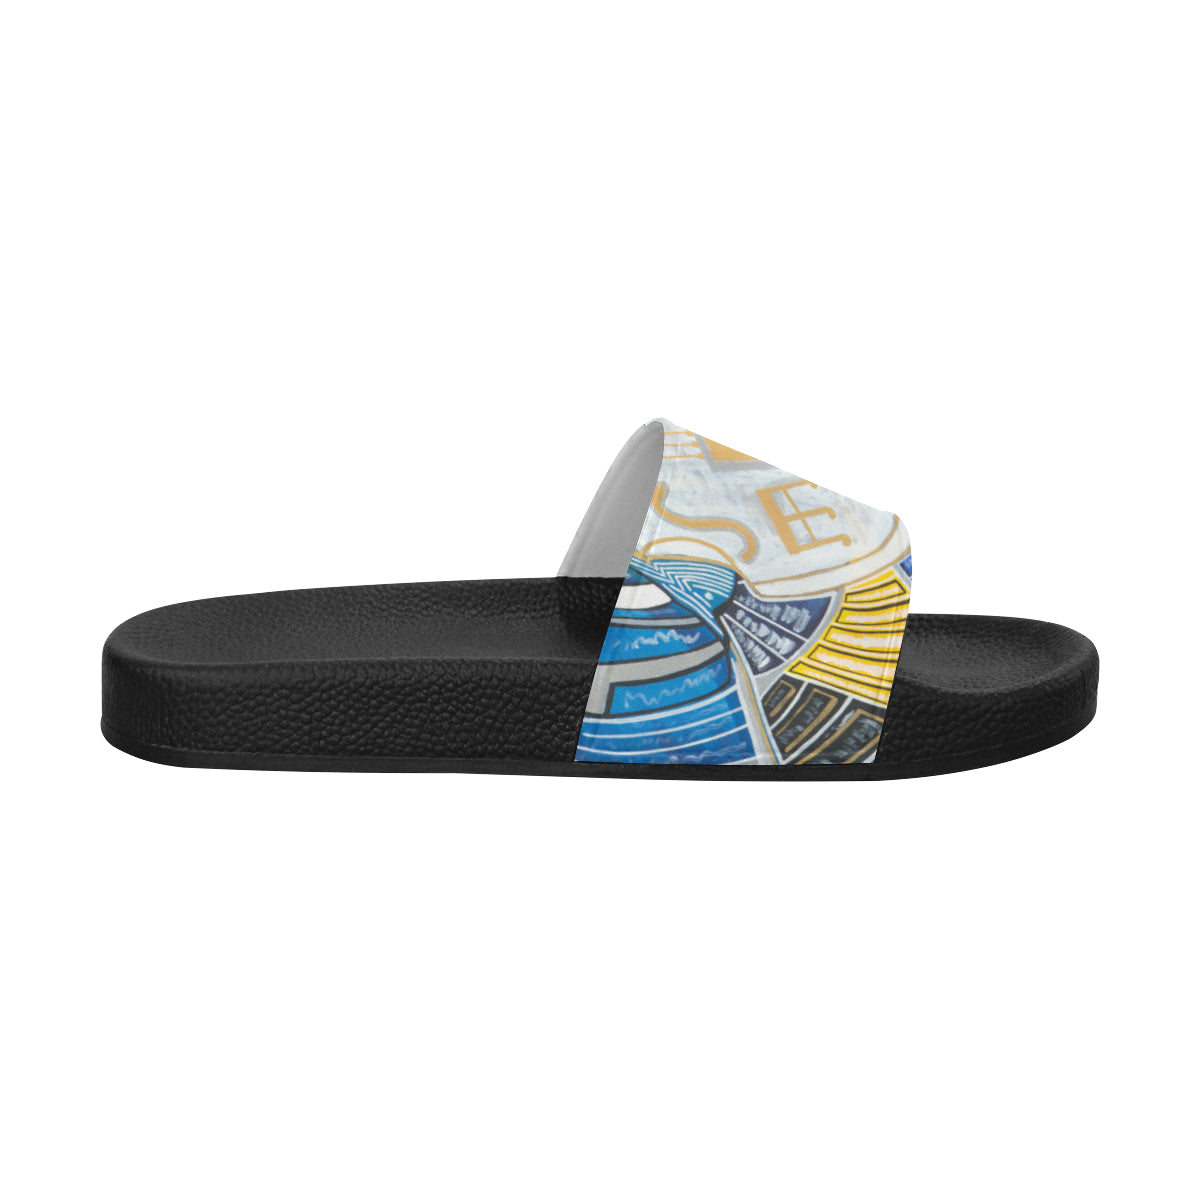 Nashville- Men's Slides ( Large)